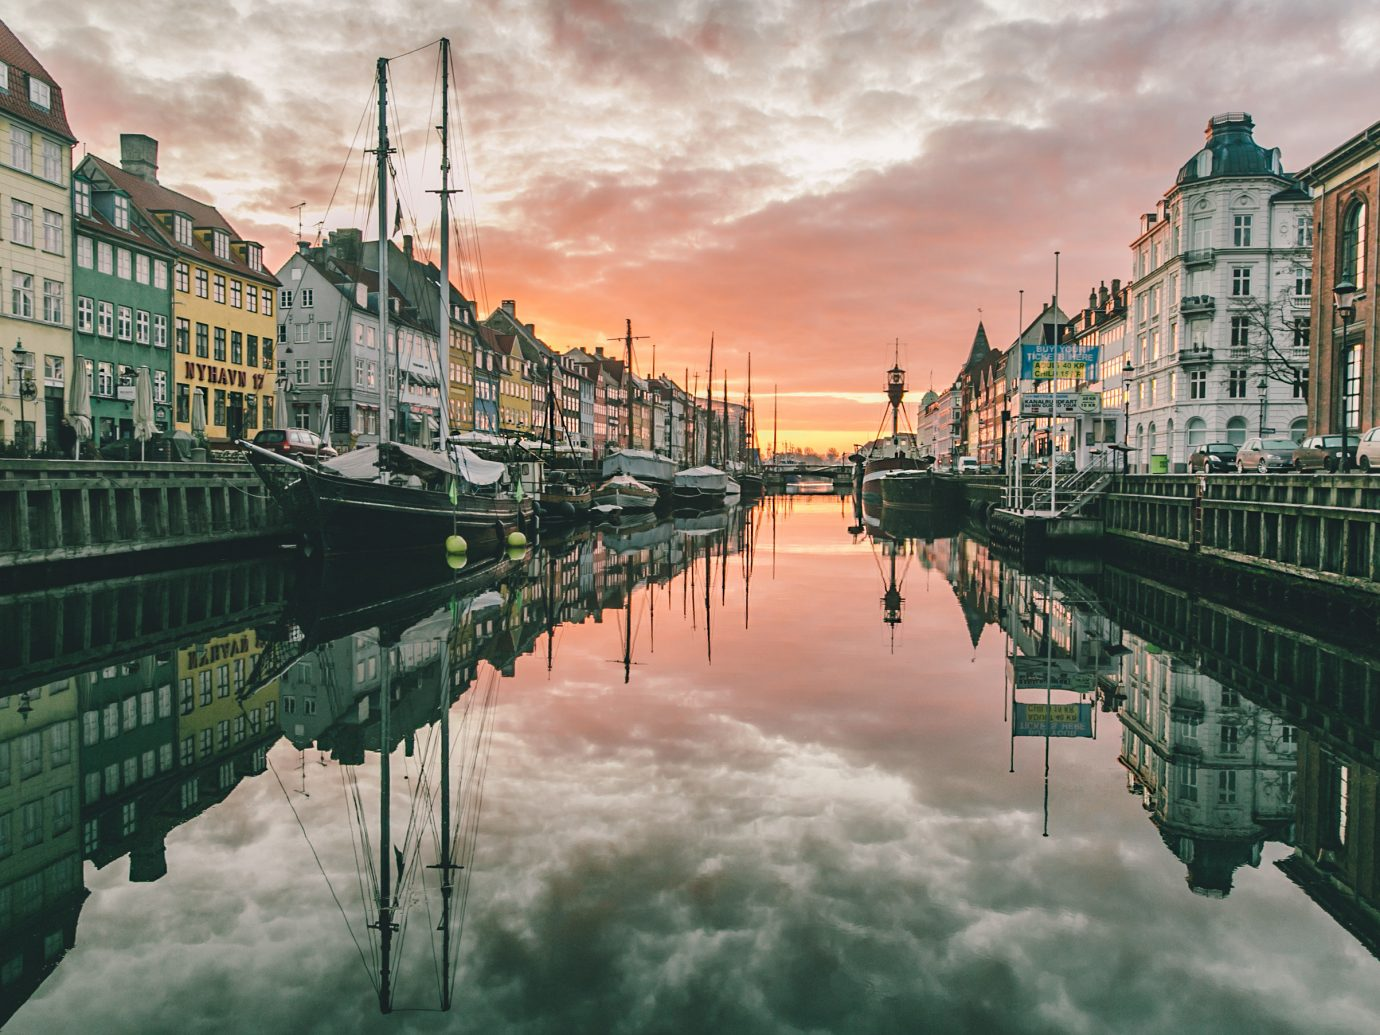 Adventure Copenhagen Denmark Luxury Travel Outdoor Activities Trip Ideas outdoor Canal River reflection landform geographical feature waterway body of water cityscape water scene landmark City urban area Town morning channel evening bridge cloudy line day